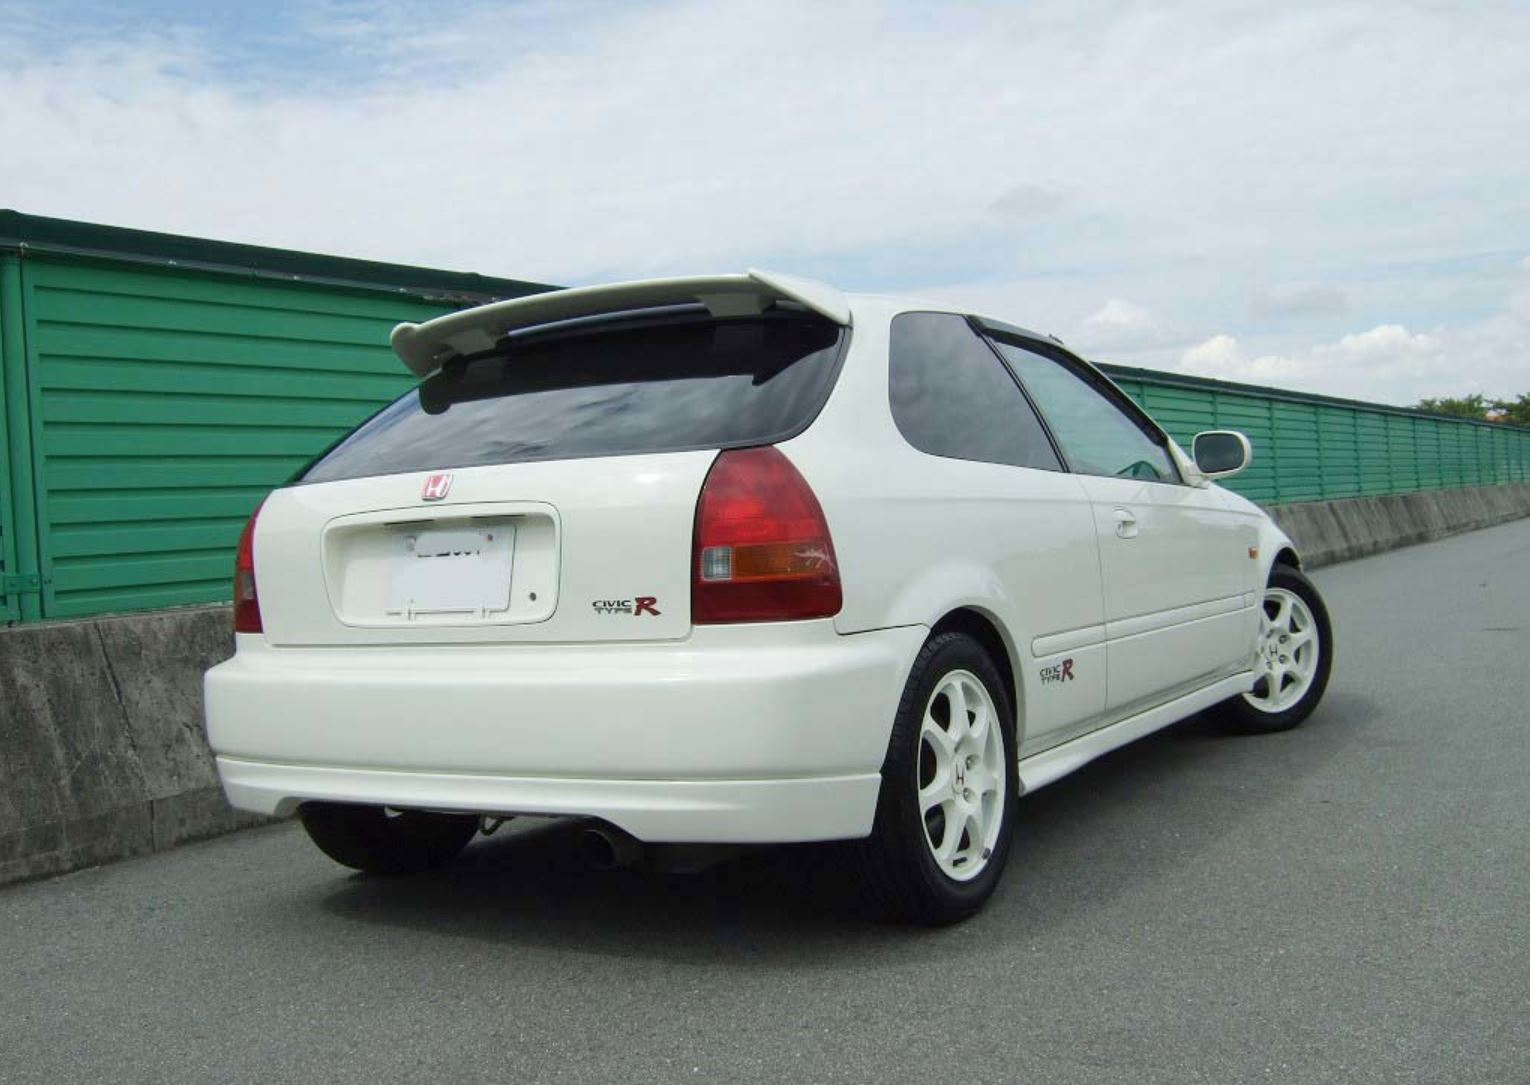 Honda Civic Type R Ek9 Buyer S Guide History Garage Dreams